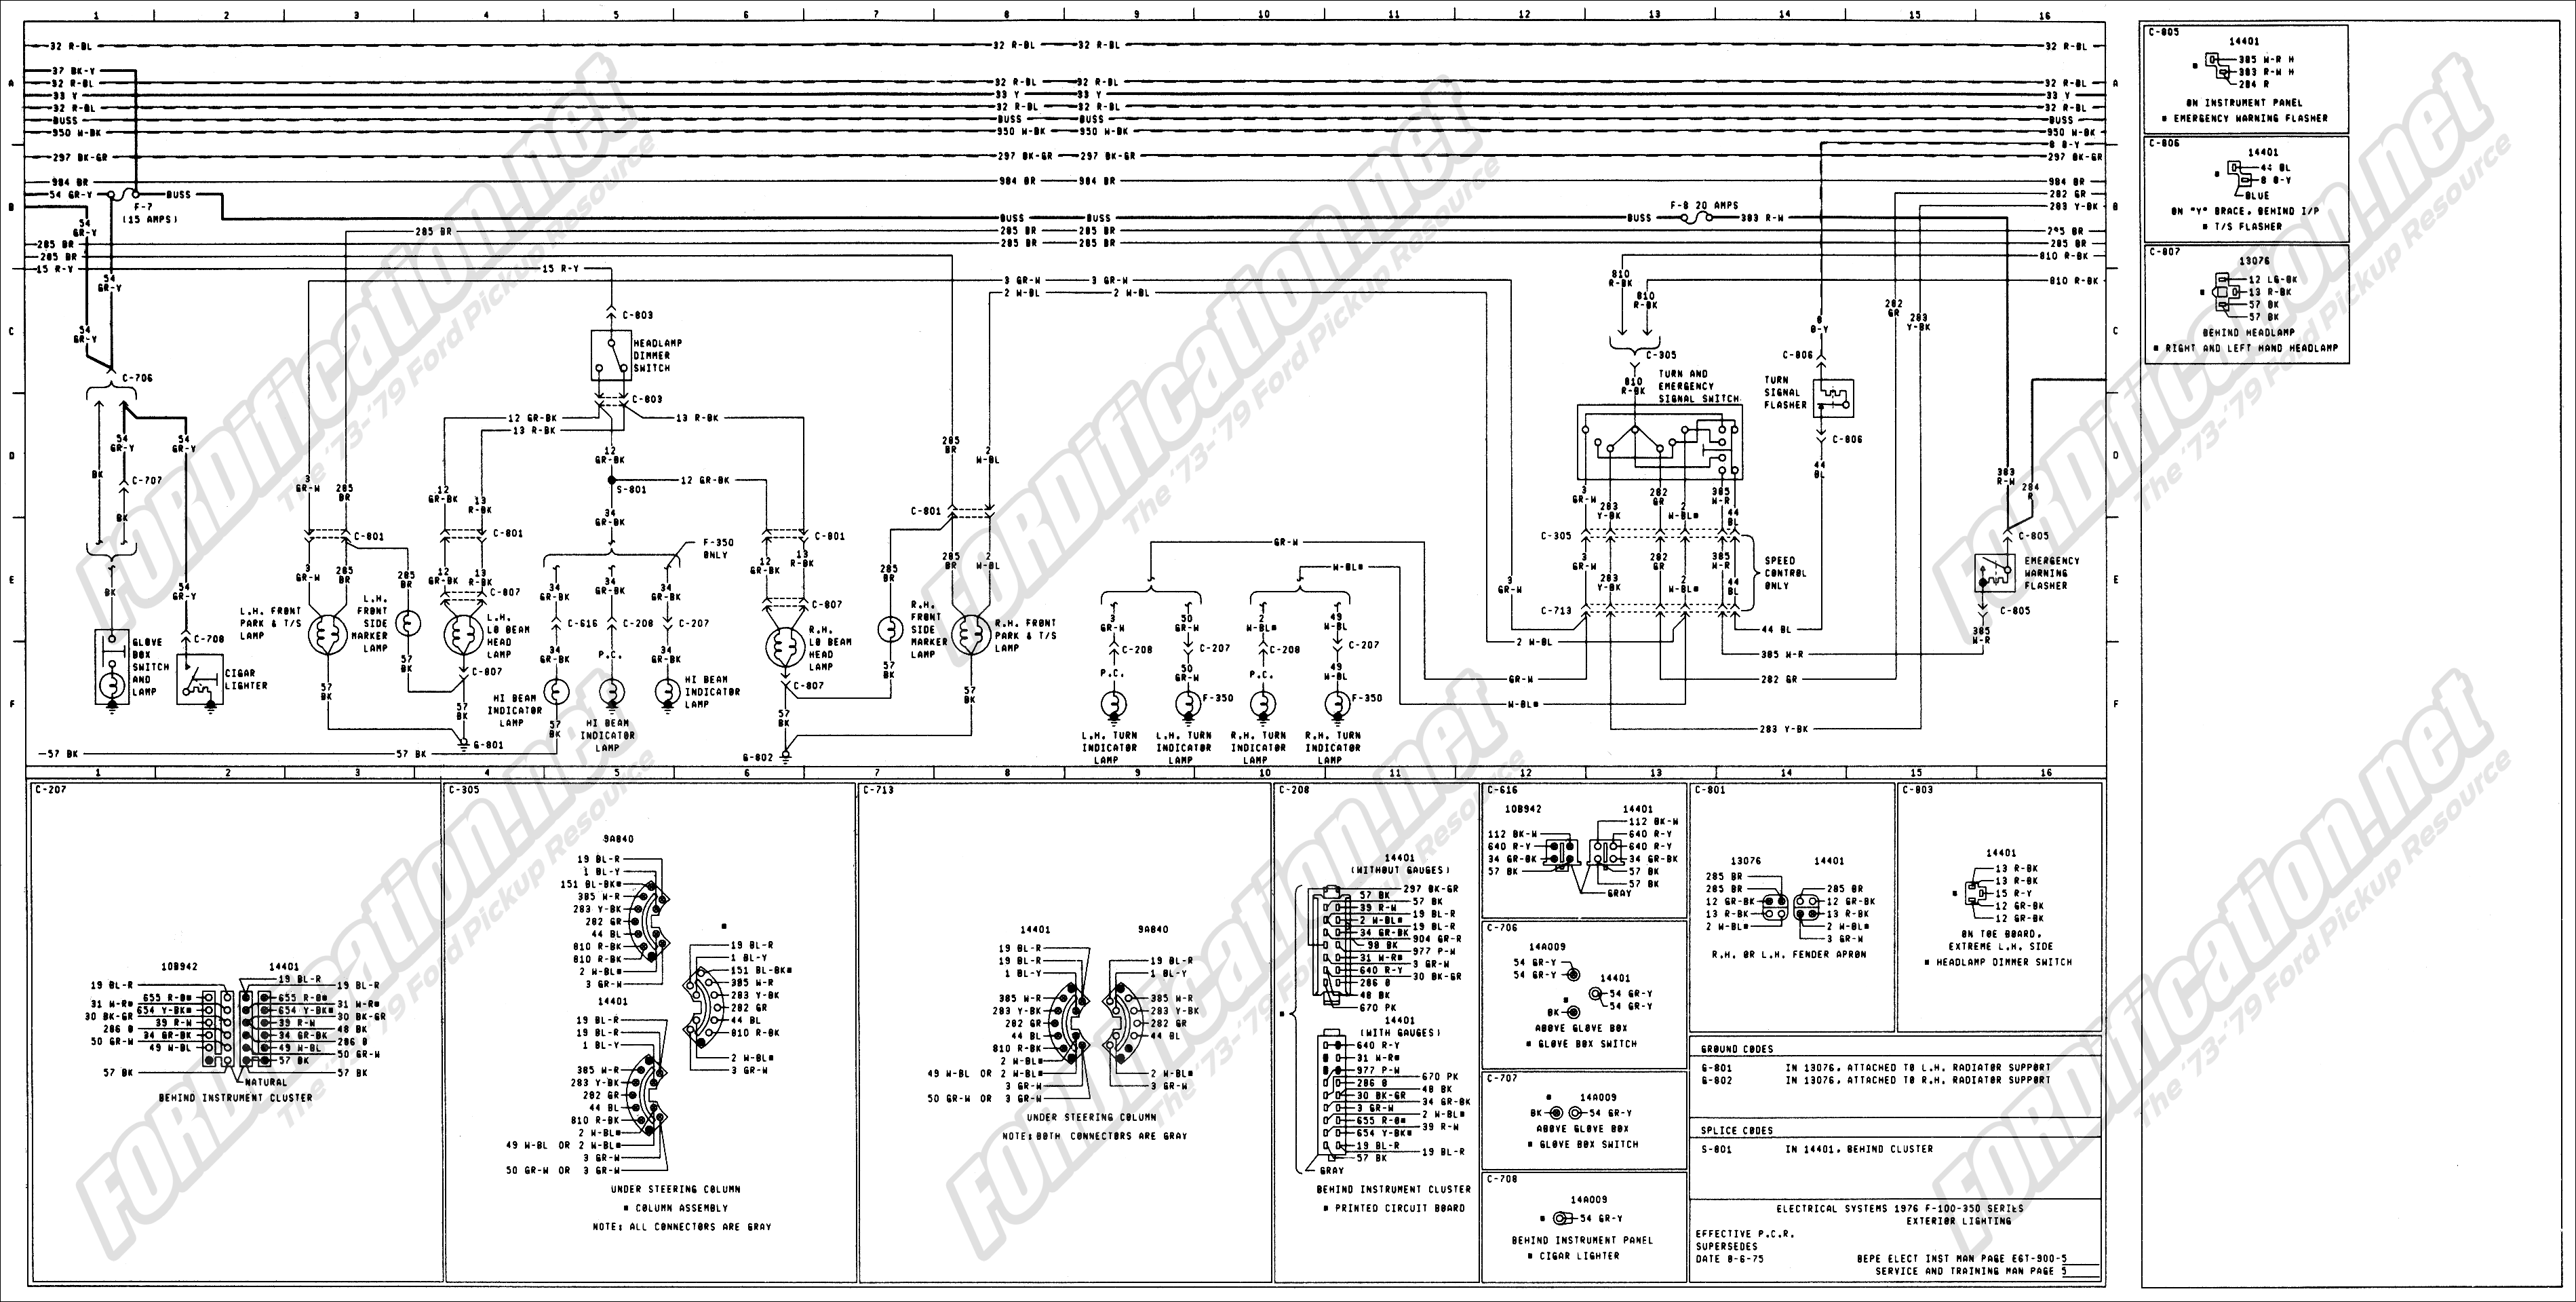 1988 mustang dash wiring diagram starting know about wiring diagram u2022  rh benjdesigns co Chevrolet Voltage Regulator Wiring Diagram Dodge Voltage  ...